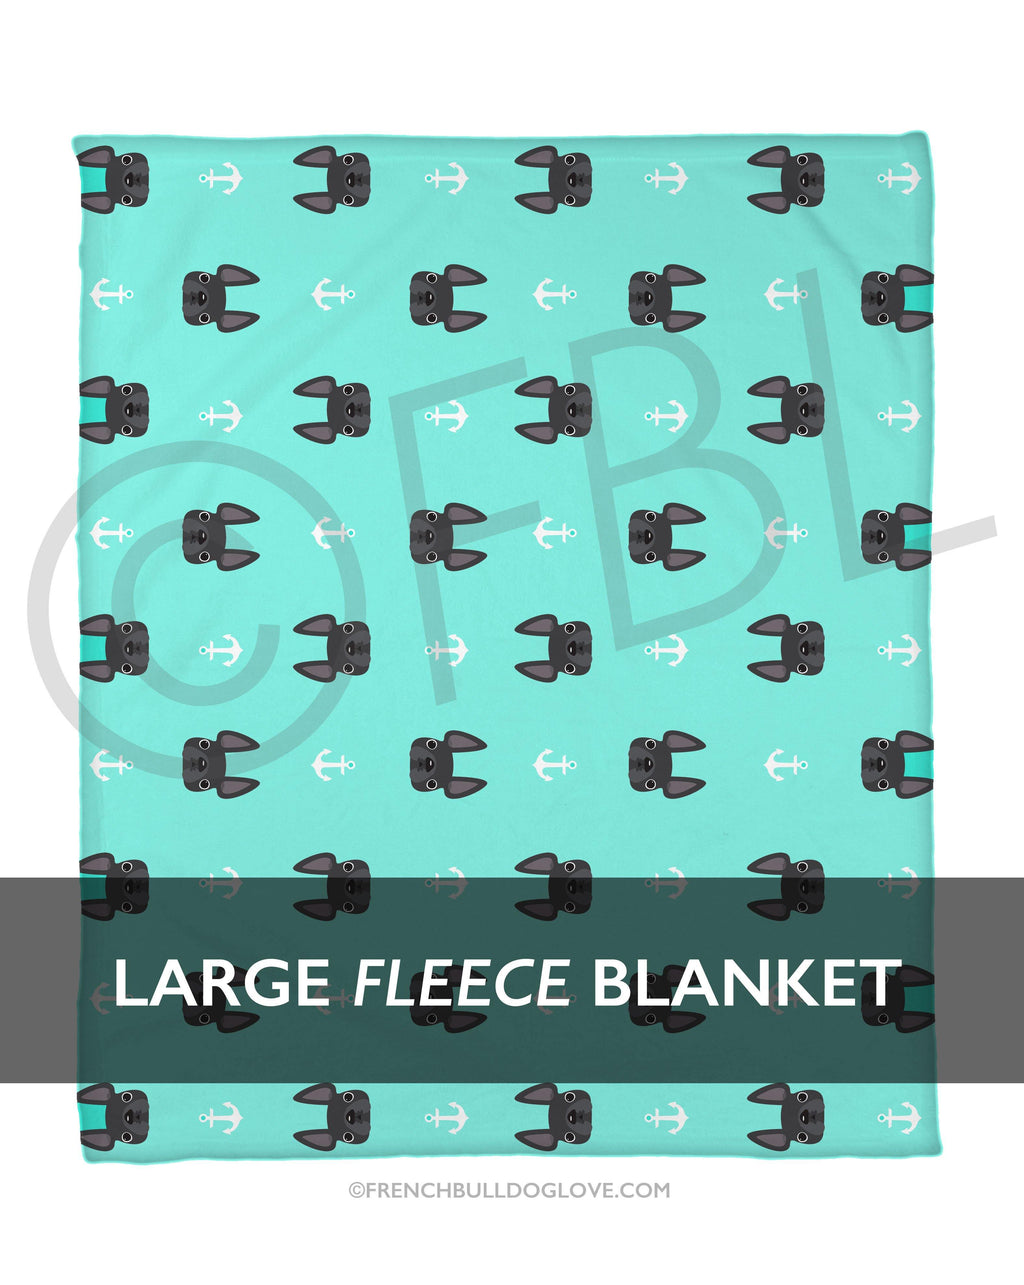 Anchors Grey French Bulldog Fleece Blanket - Large